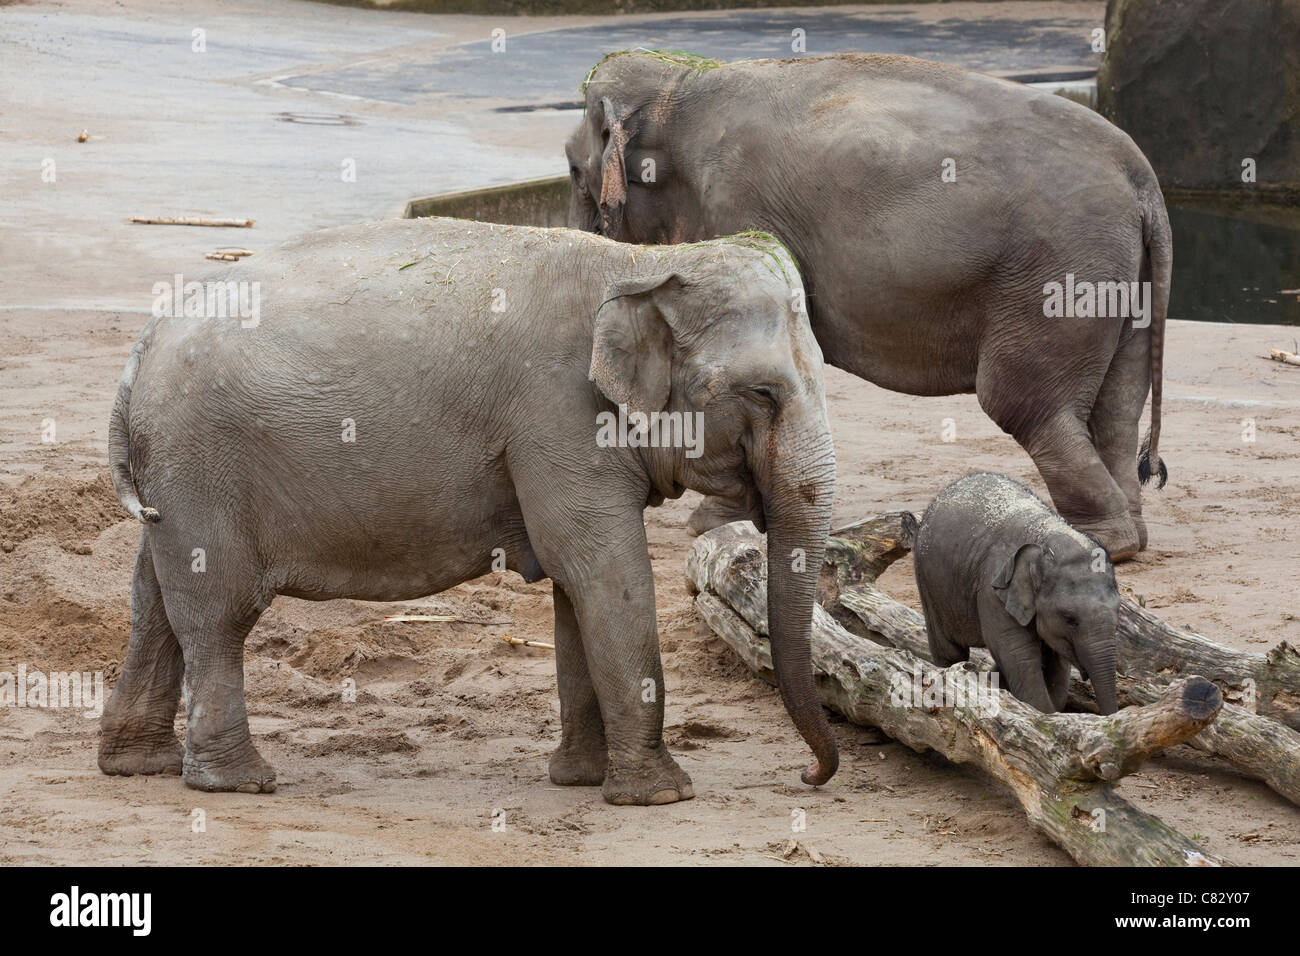 Asian or Indian Elephants (Elephas maximus). Cows, calf, finding keeper hidden food amongst tree logs. Environmental - Stock Image